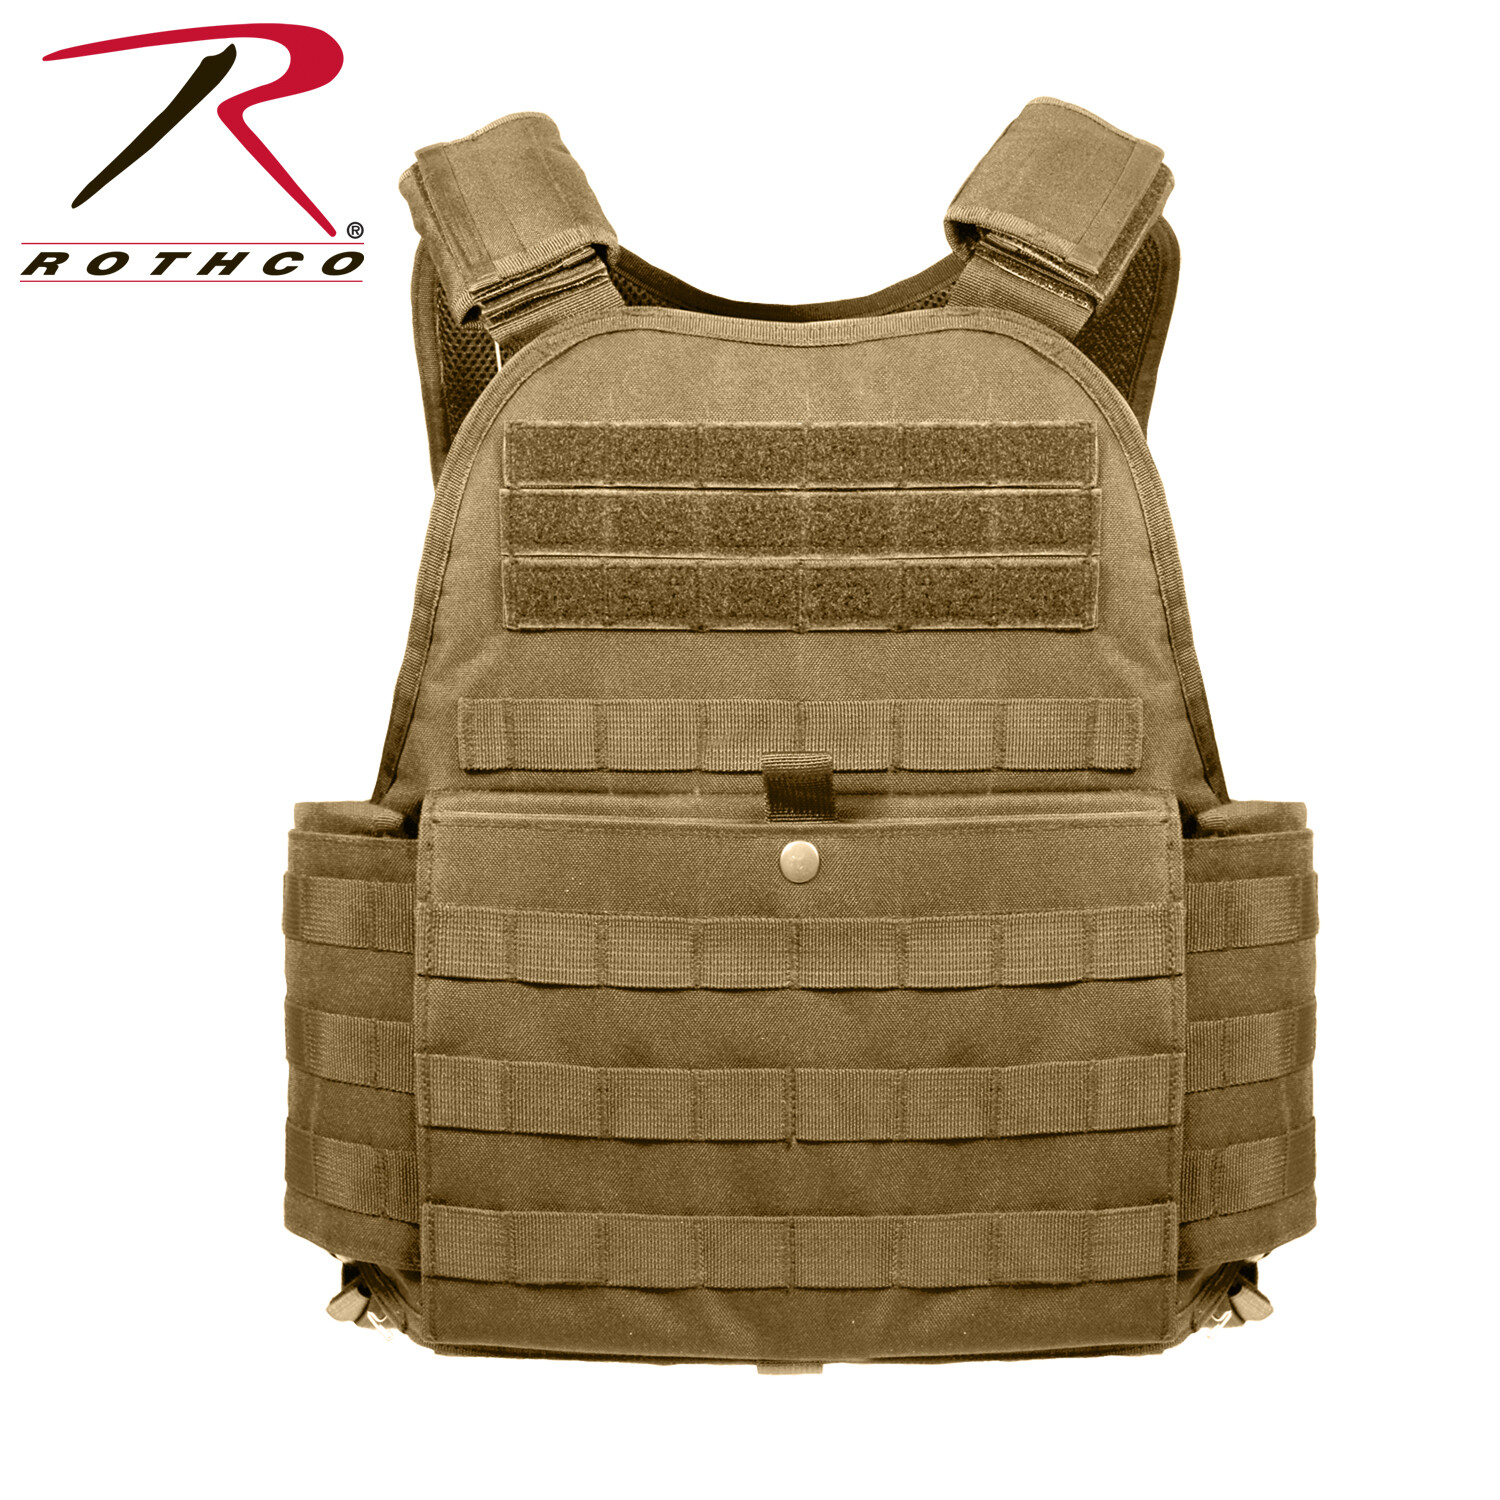 Rothco, 1923, Coyote Brown M.O.L.L.E. Plate Carrier Vest-2XL/3XL